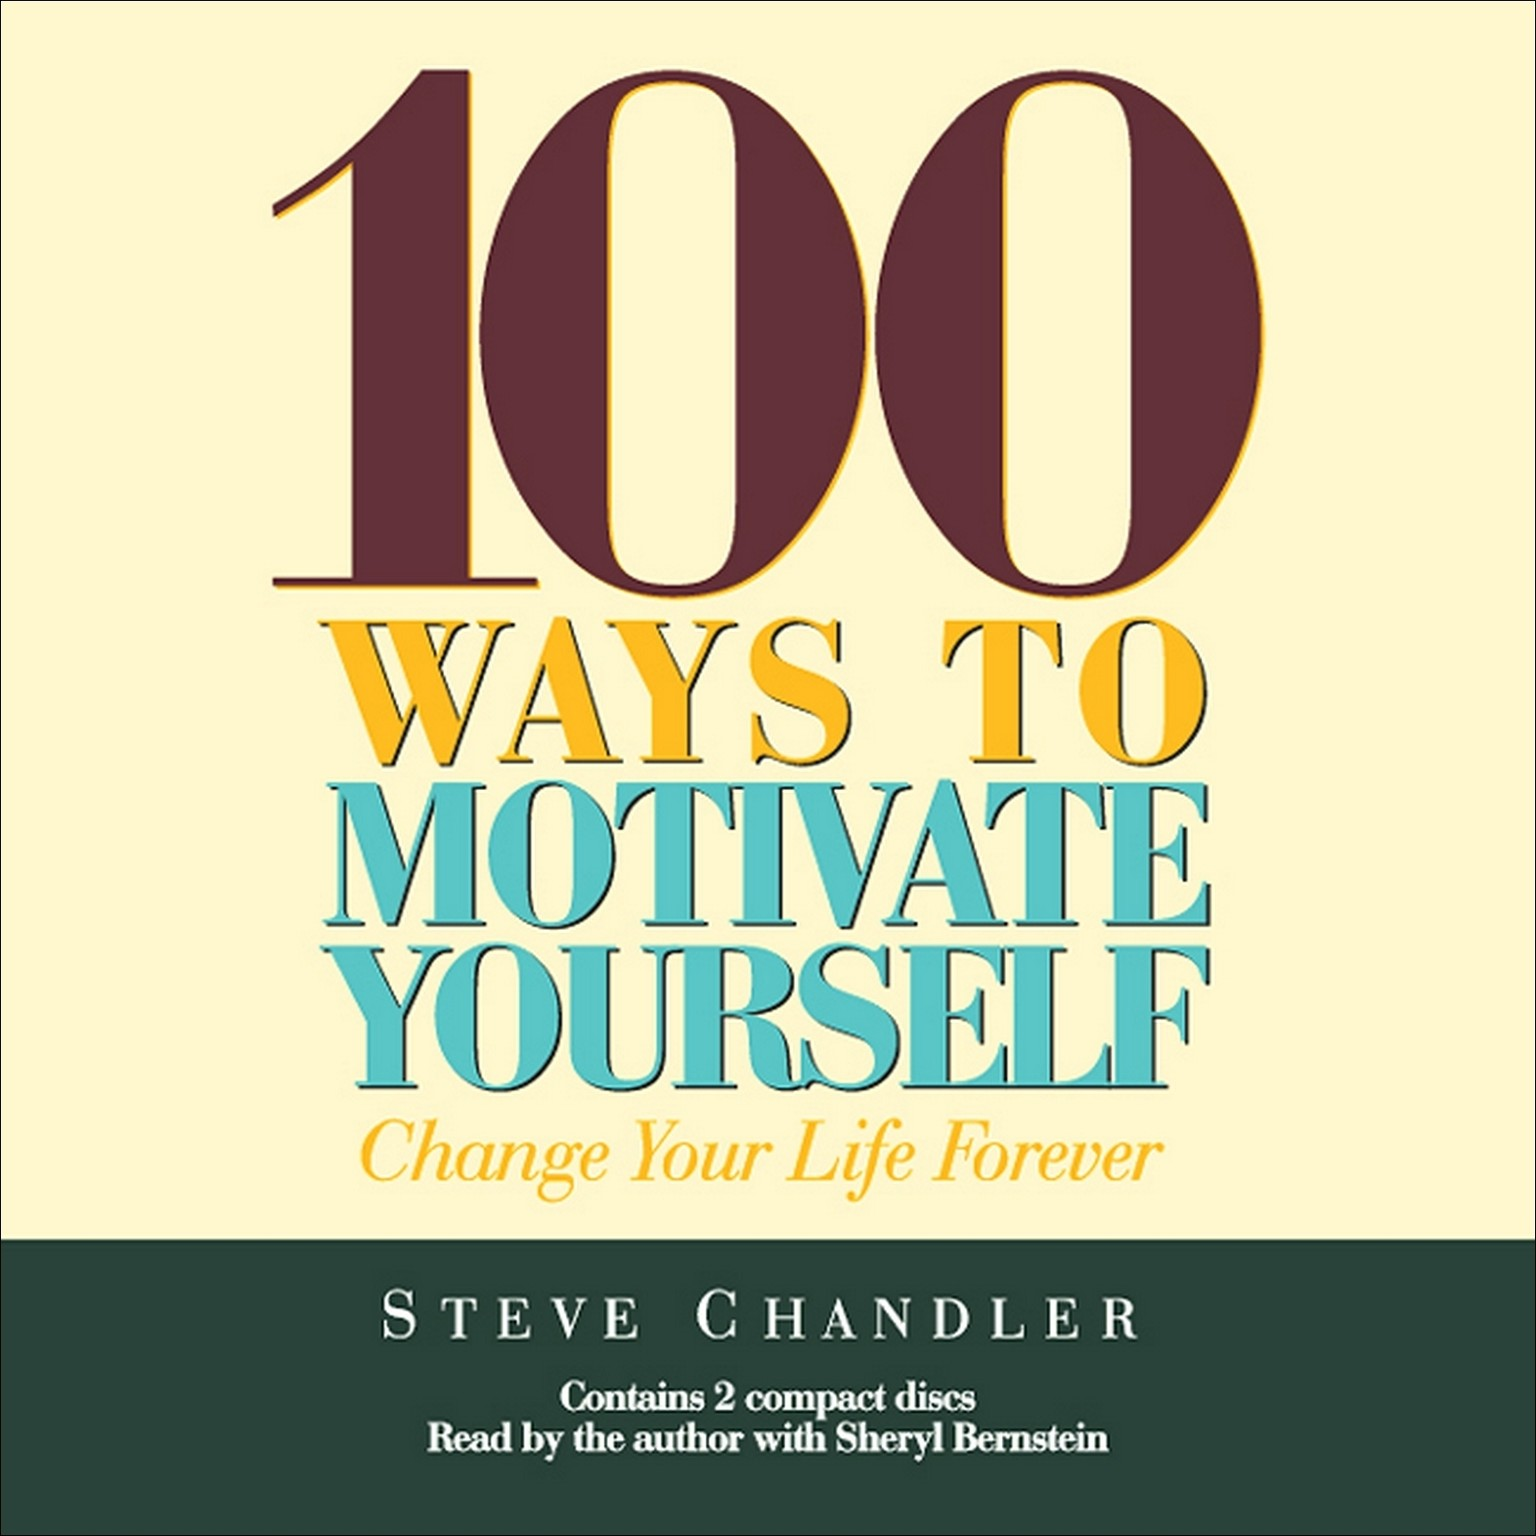 Printable 100 Ways to Motivate Yourself: Change Your Life Forever Audiobook Cover Art